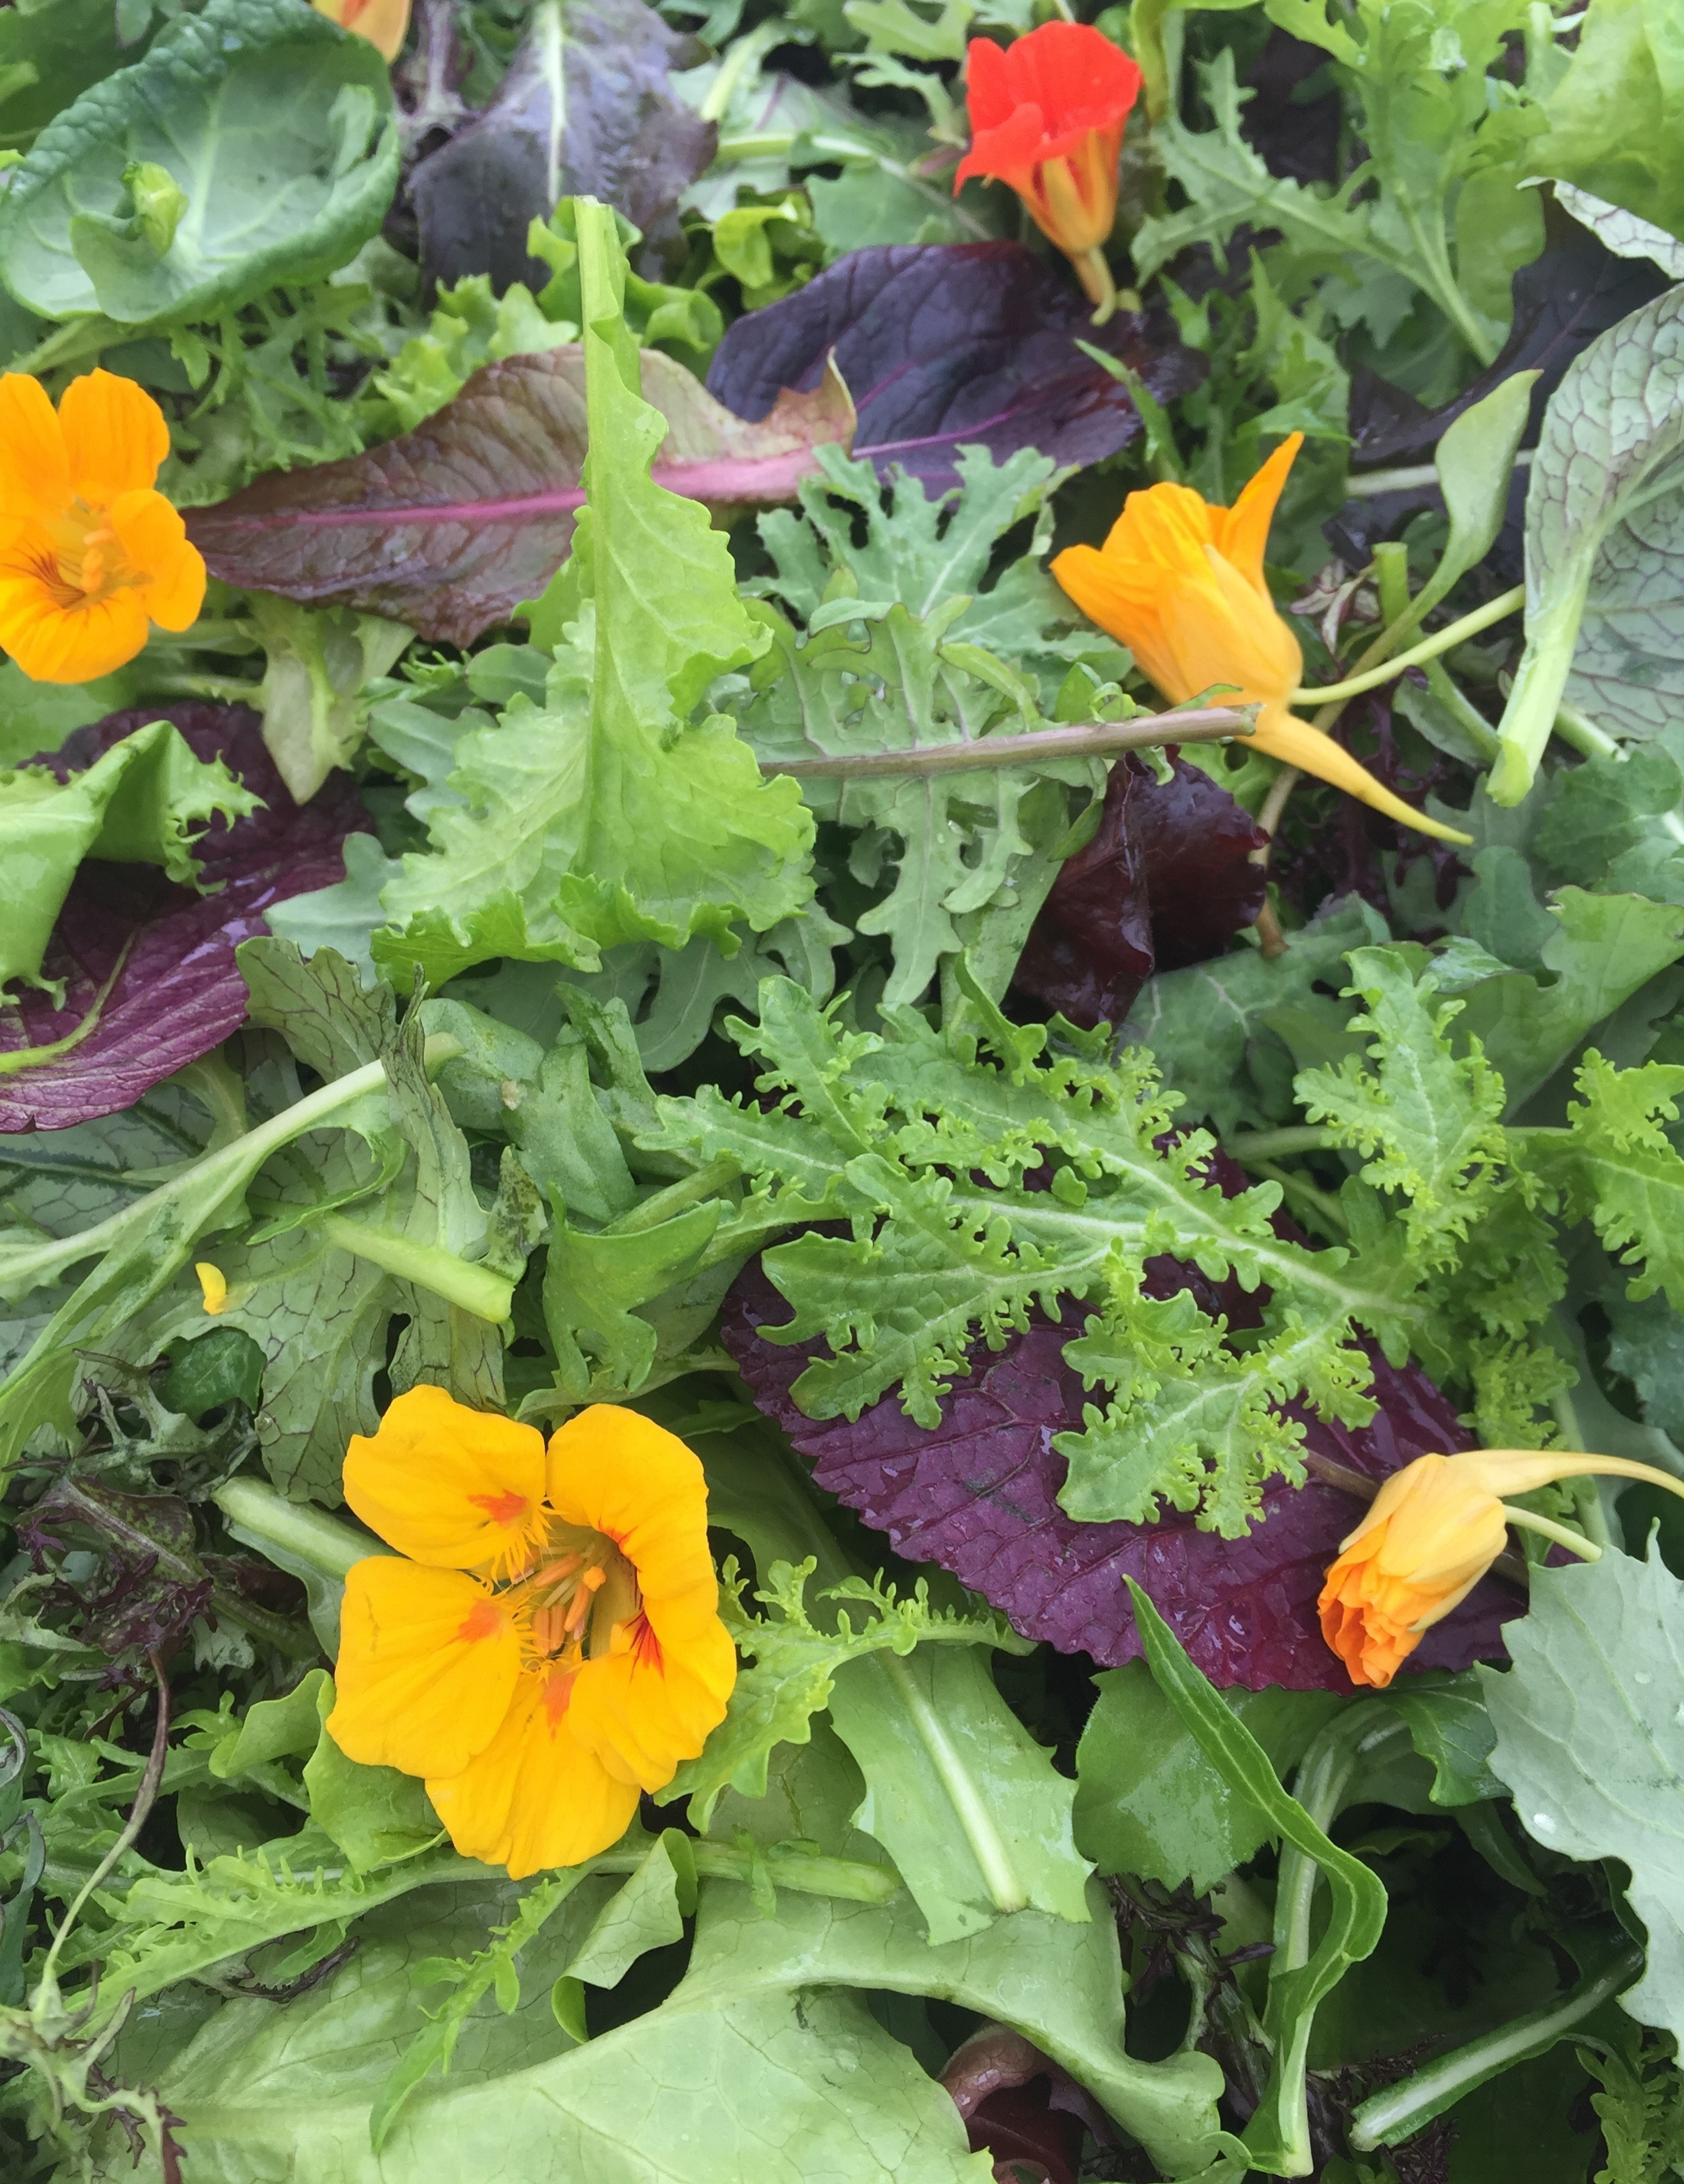 Nasturtiums in our mesclun mix